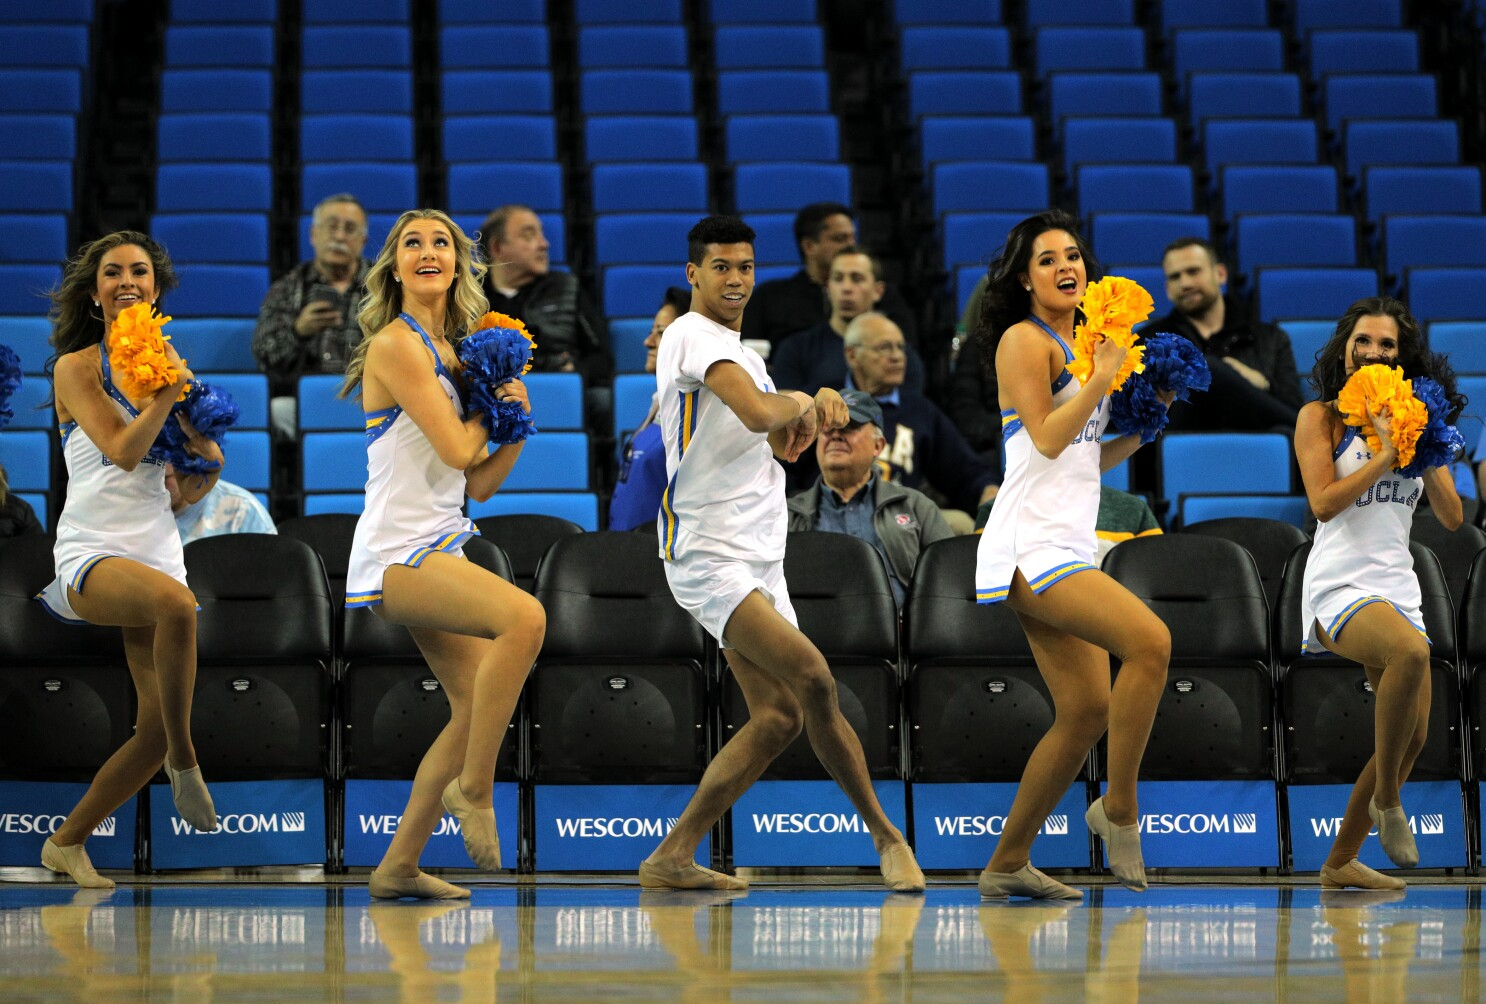 Devin Mallory Is Doing What He Loves As First Male On Ucla S Dance